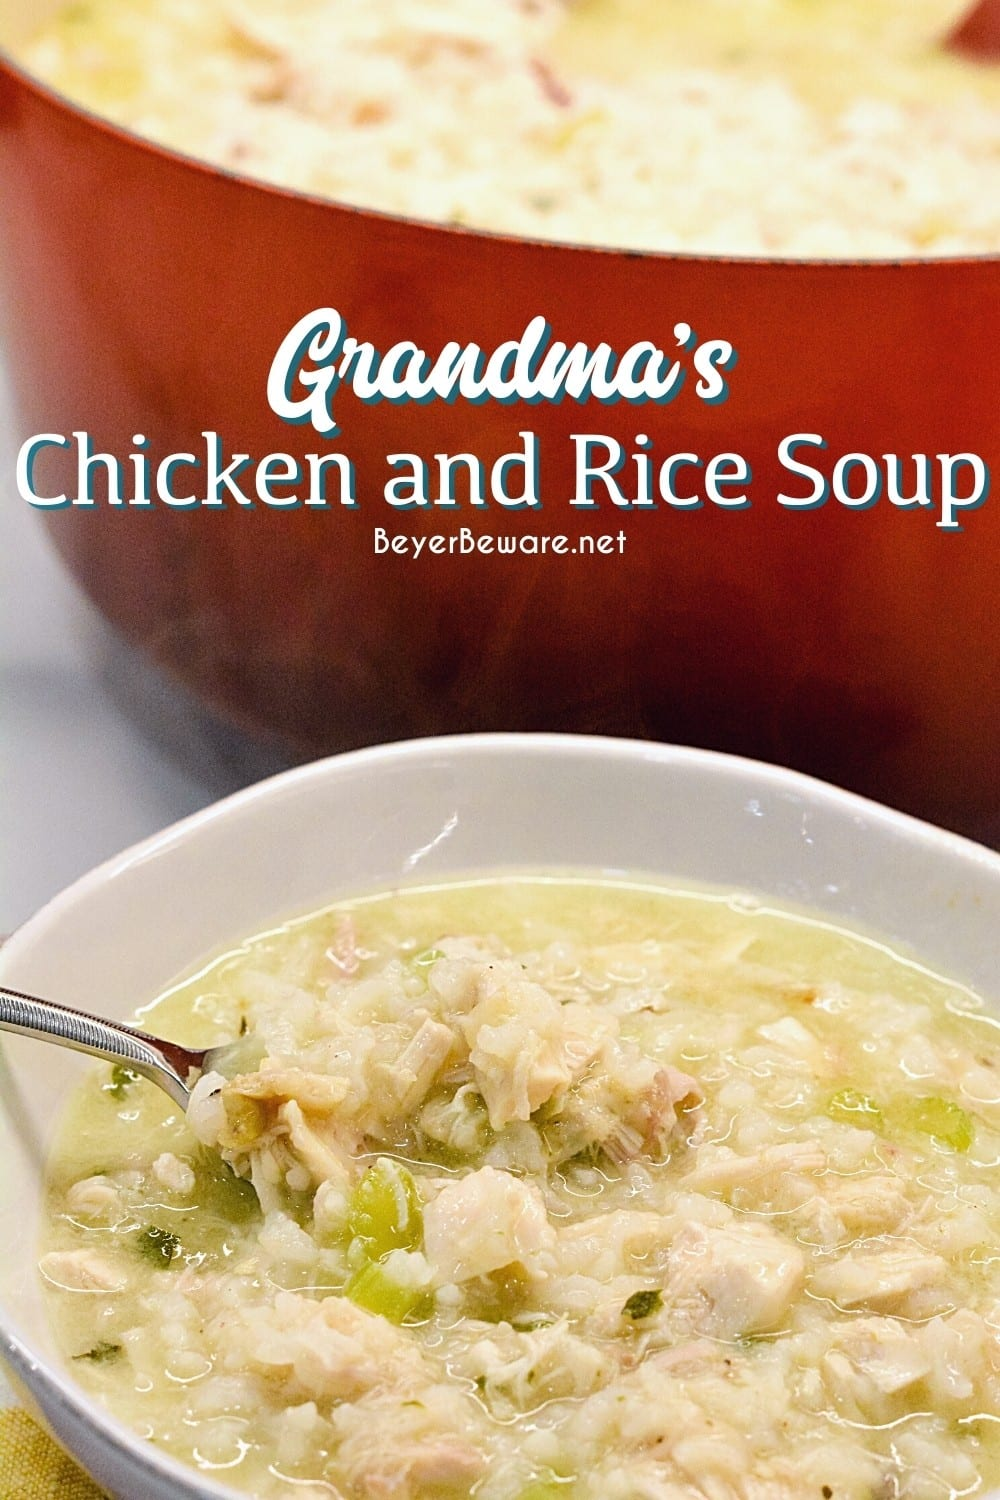 Grandma's chicken and rice soup is made from a whole chicken, onions, celery, and rice with seasonings, butter, and Better than Bouillon for spoonfuls of comfort.